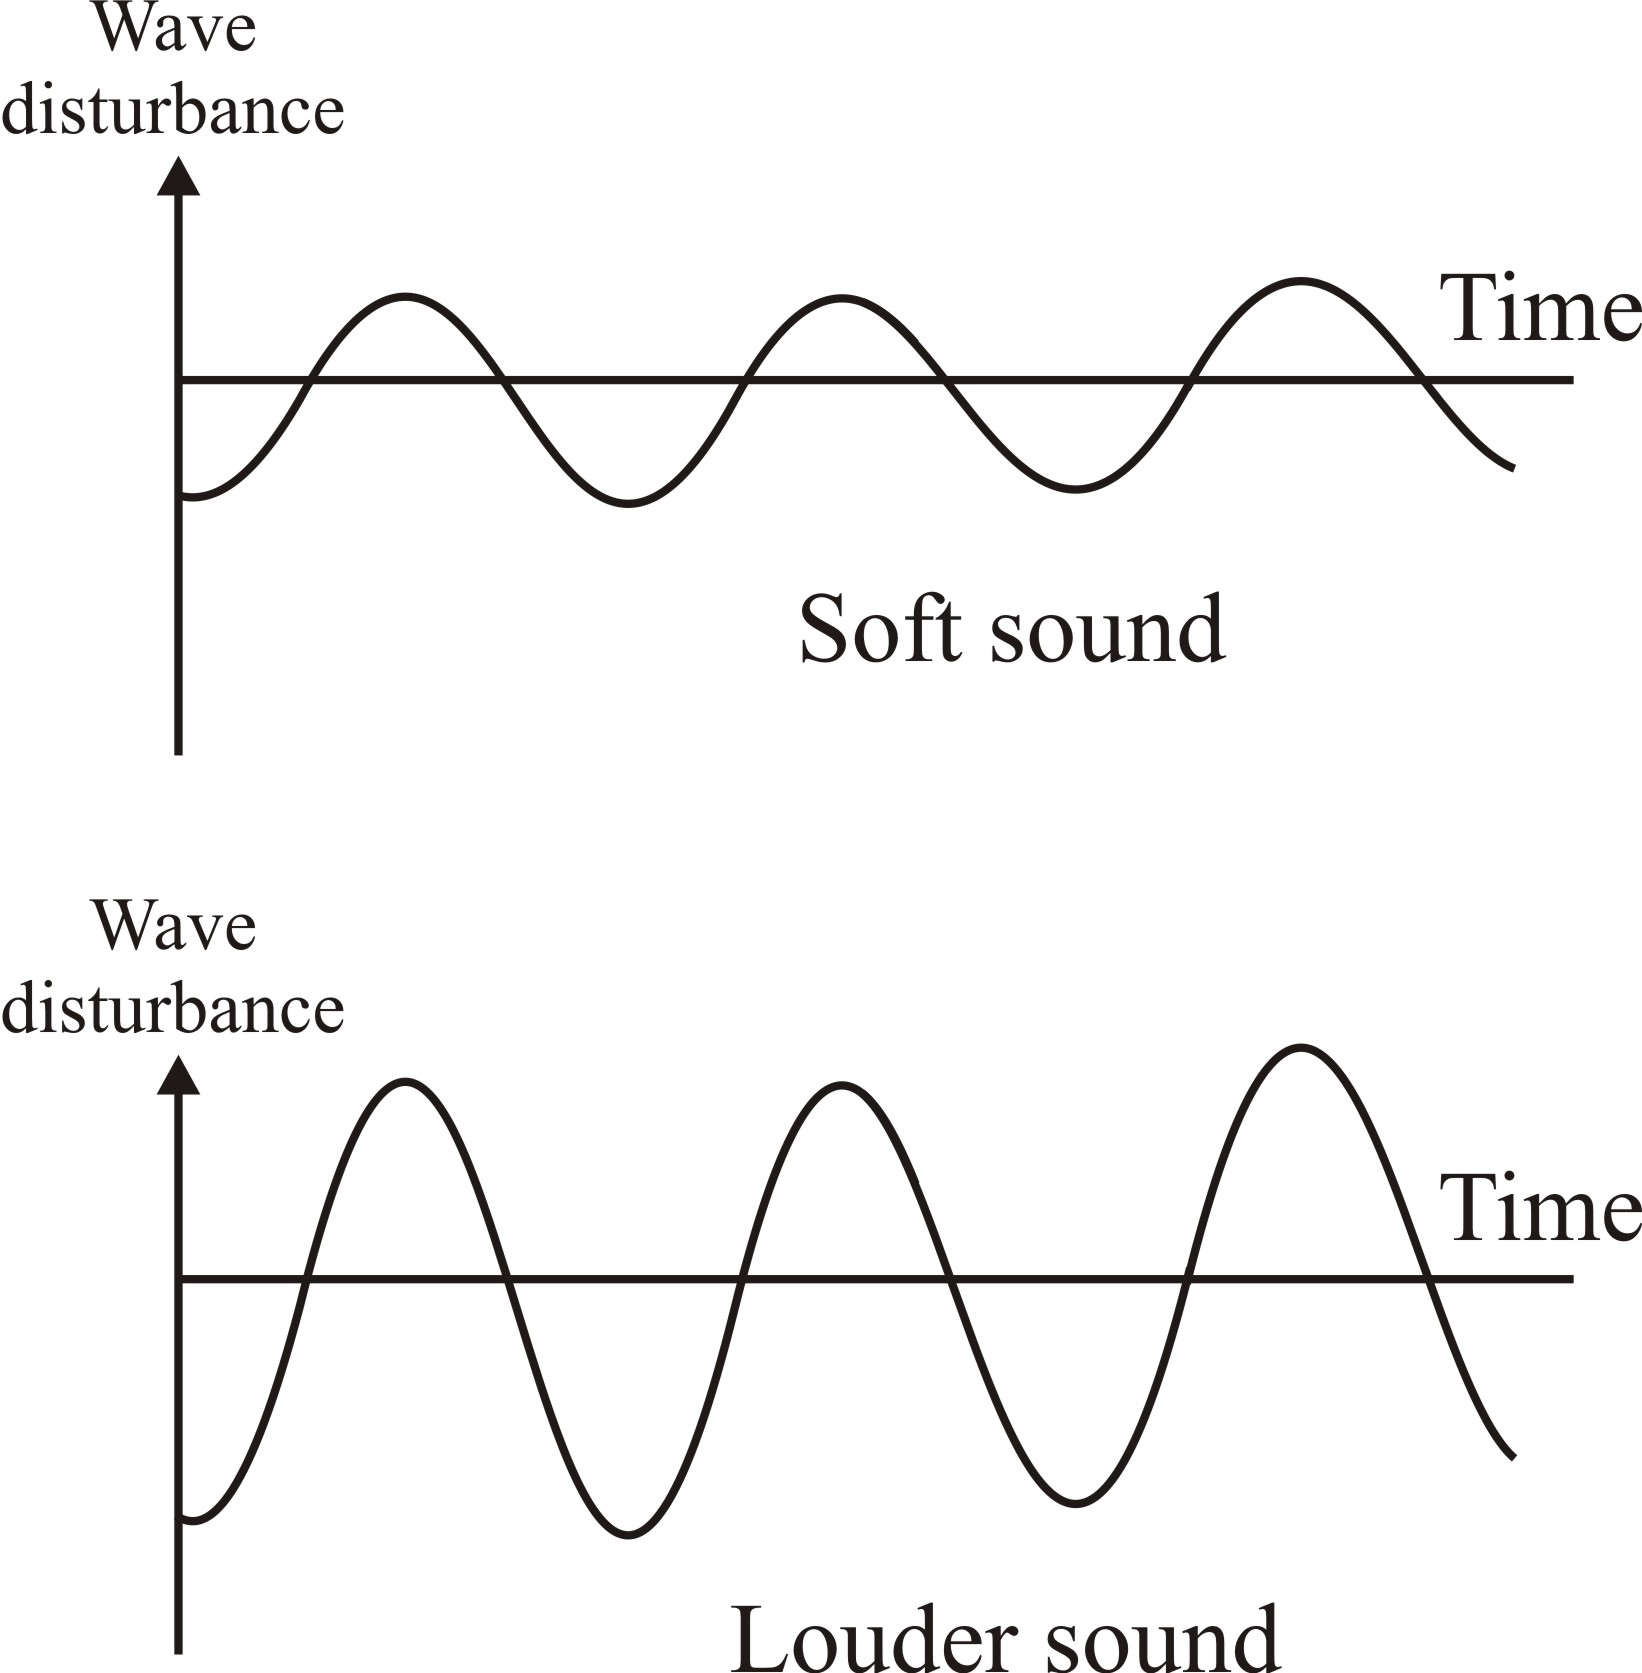 science diagram of noise sound : s.chand - dronstudy.com